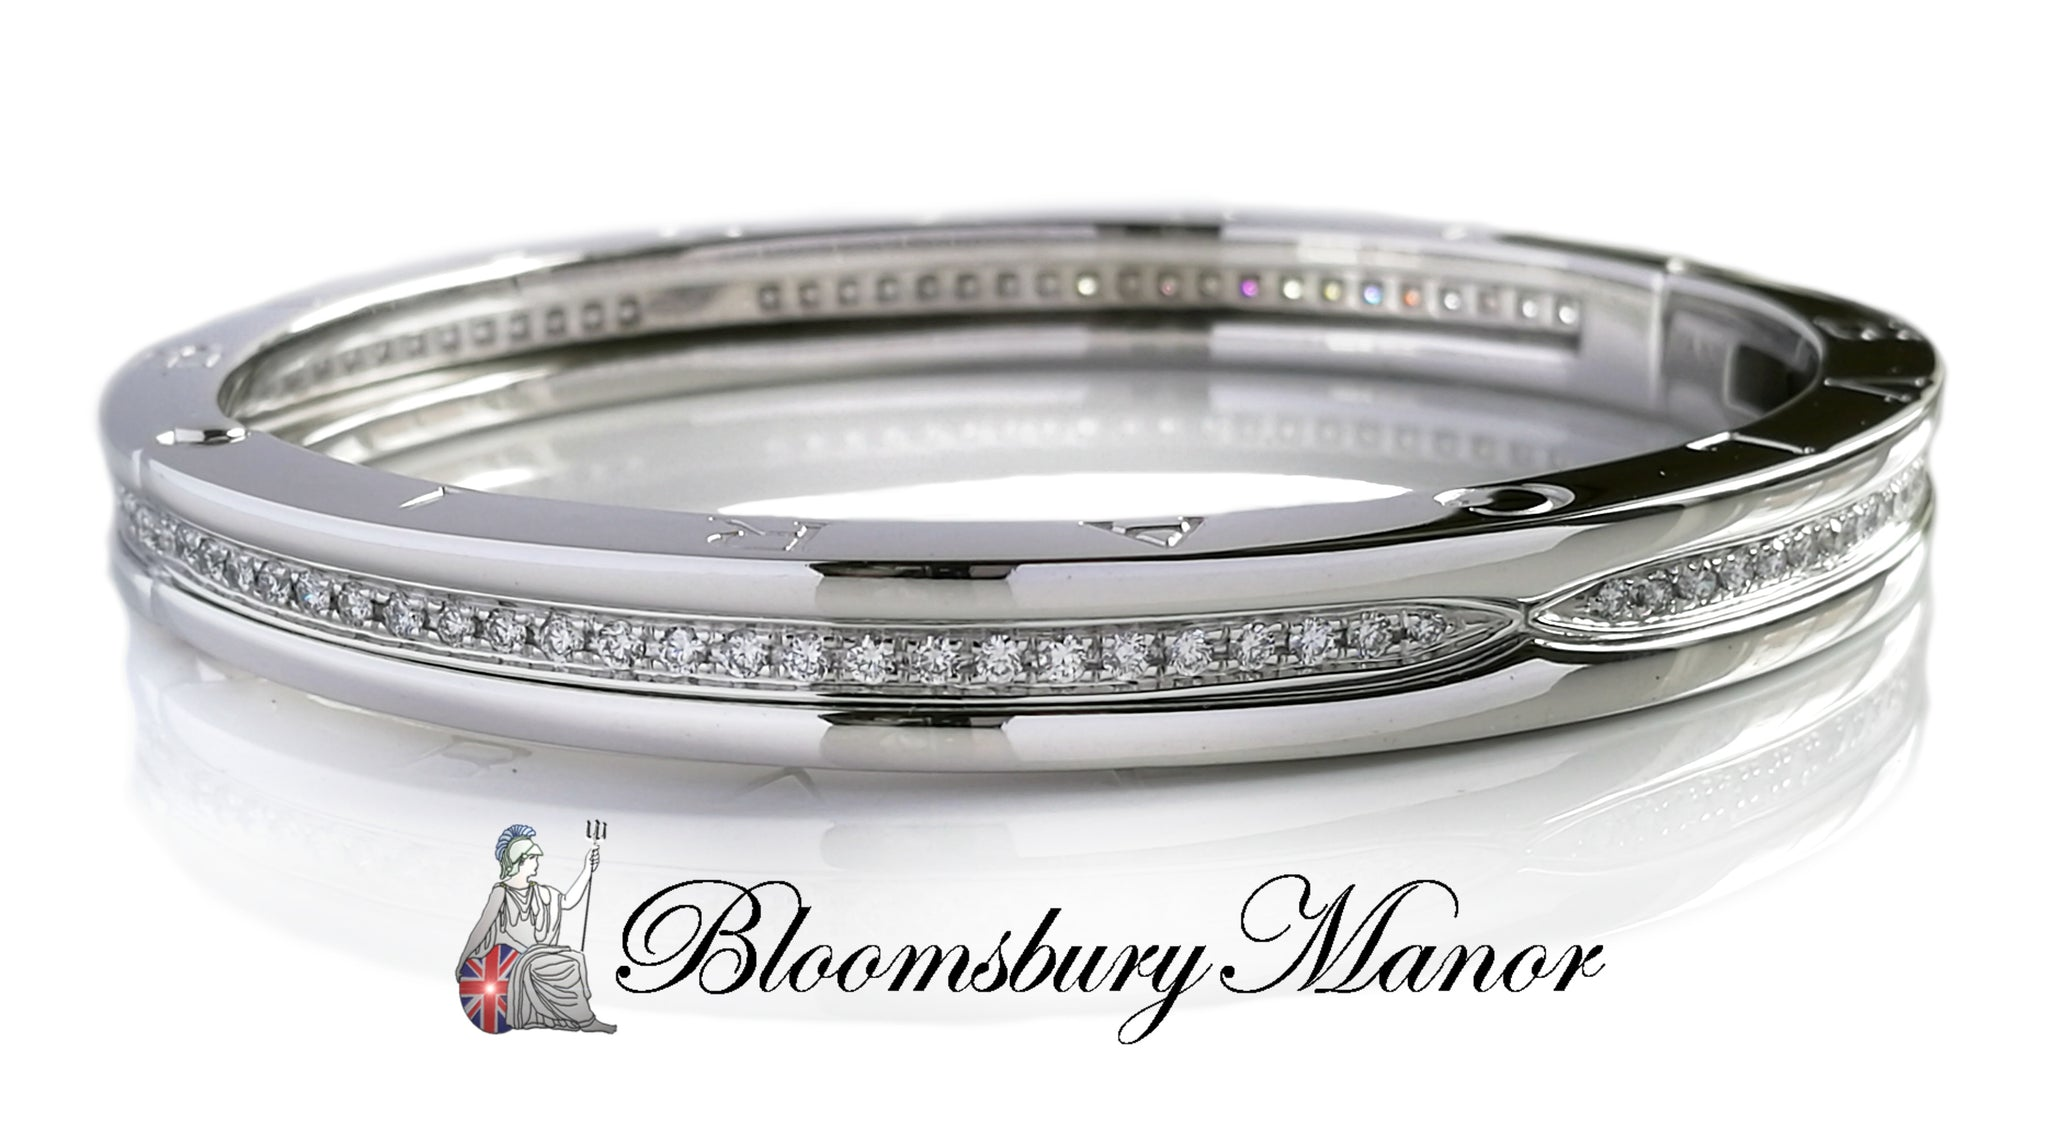 bangles pave jewelry sterling diamond bangle tone cz silver flower bling swirl bridal daisy bracelet